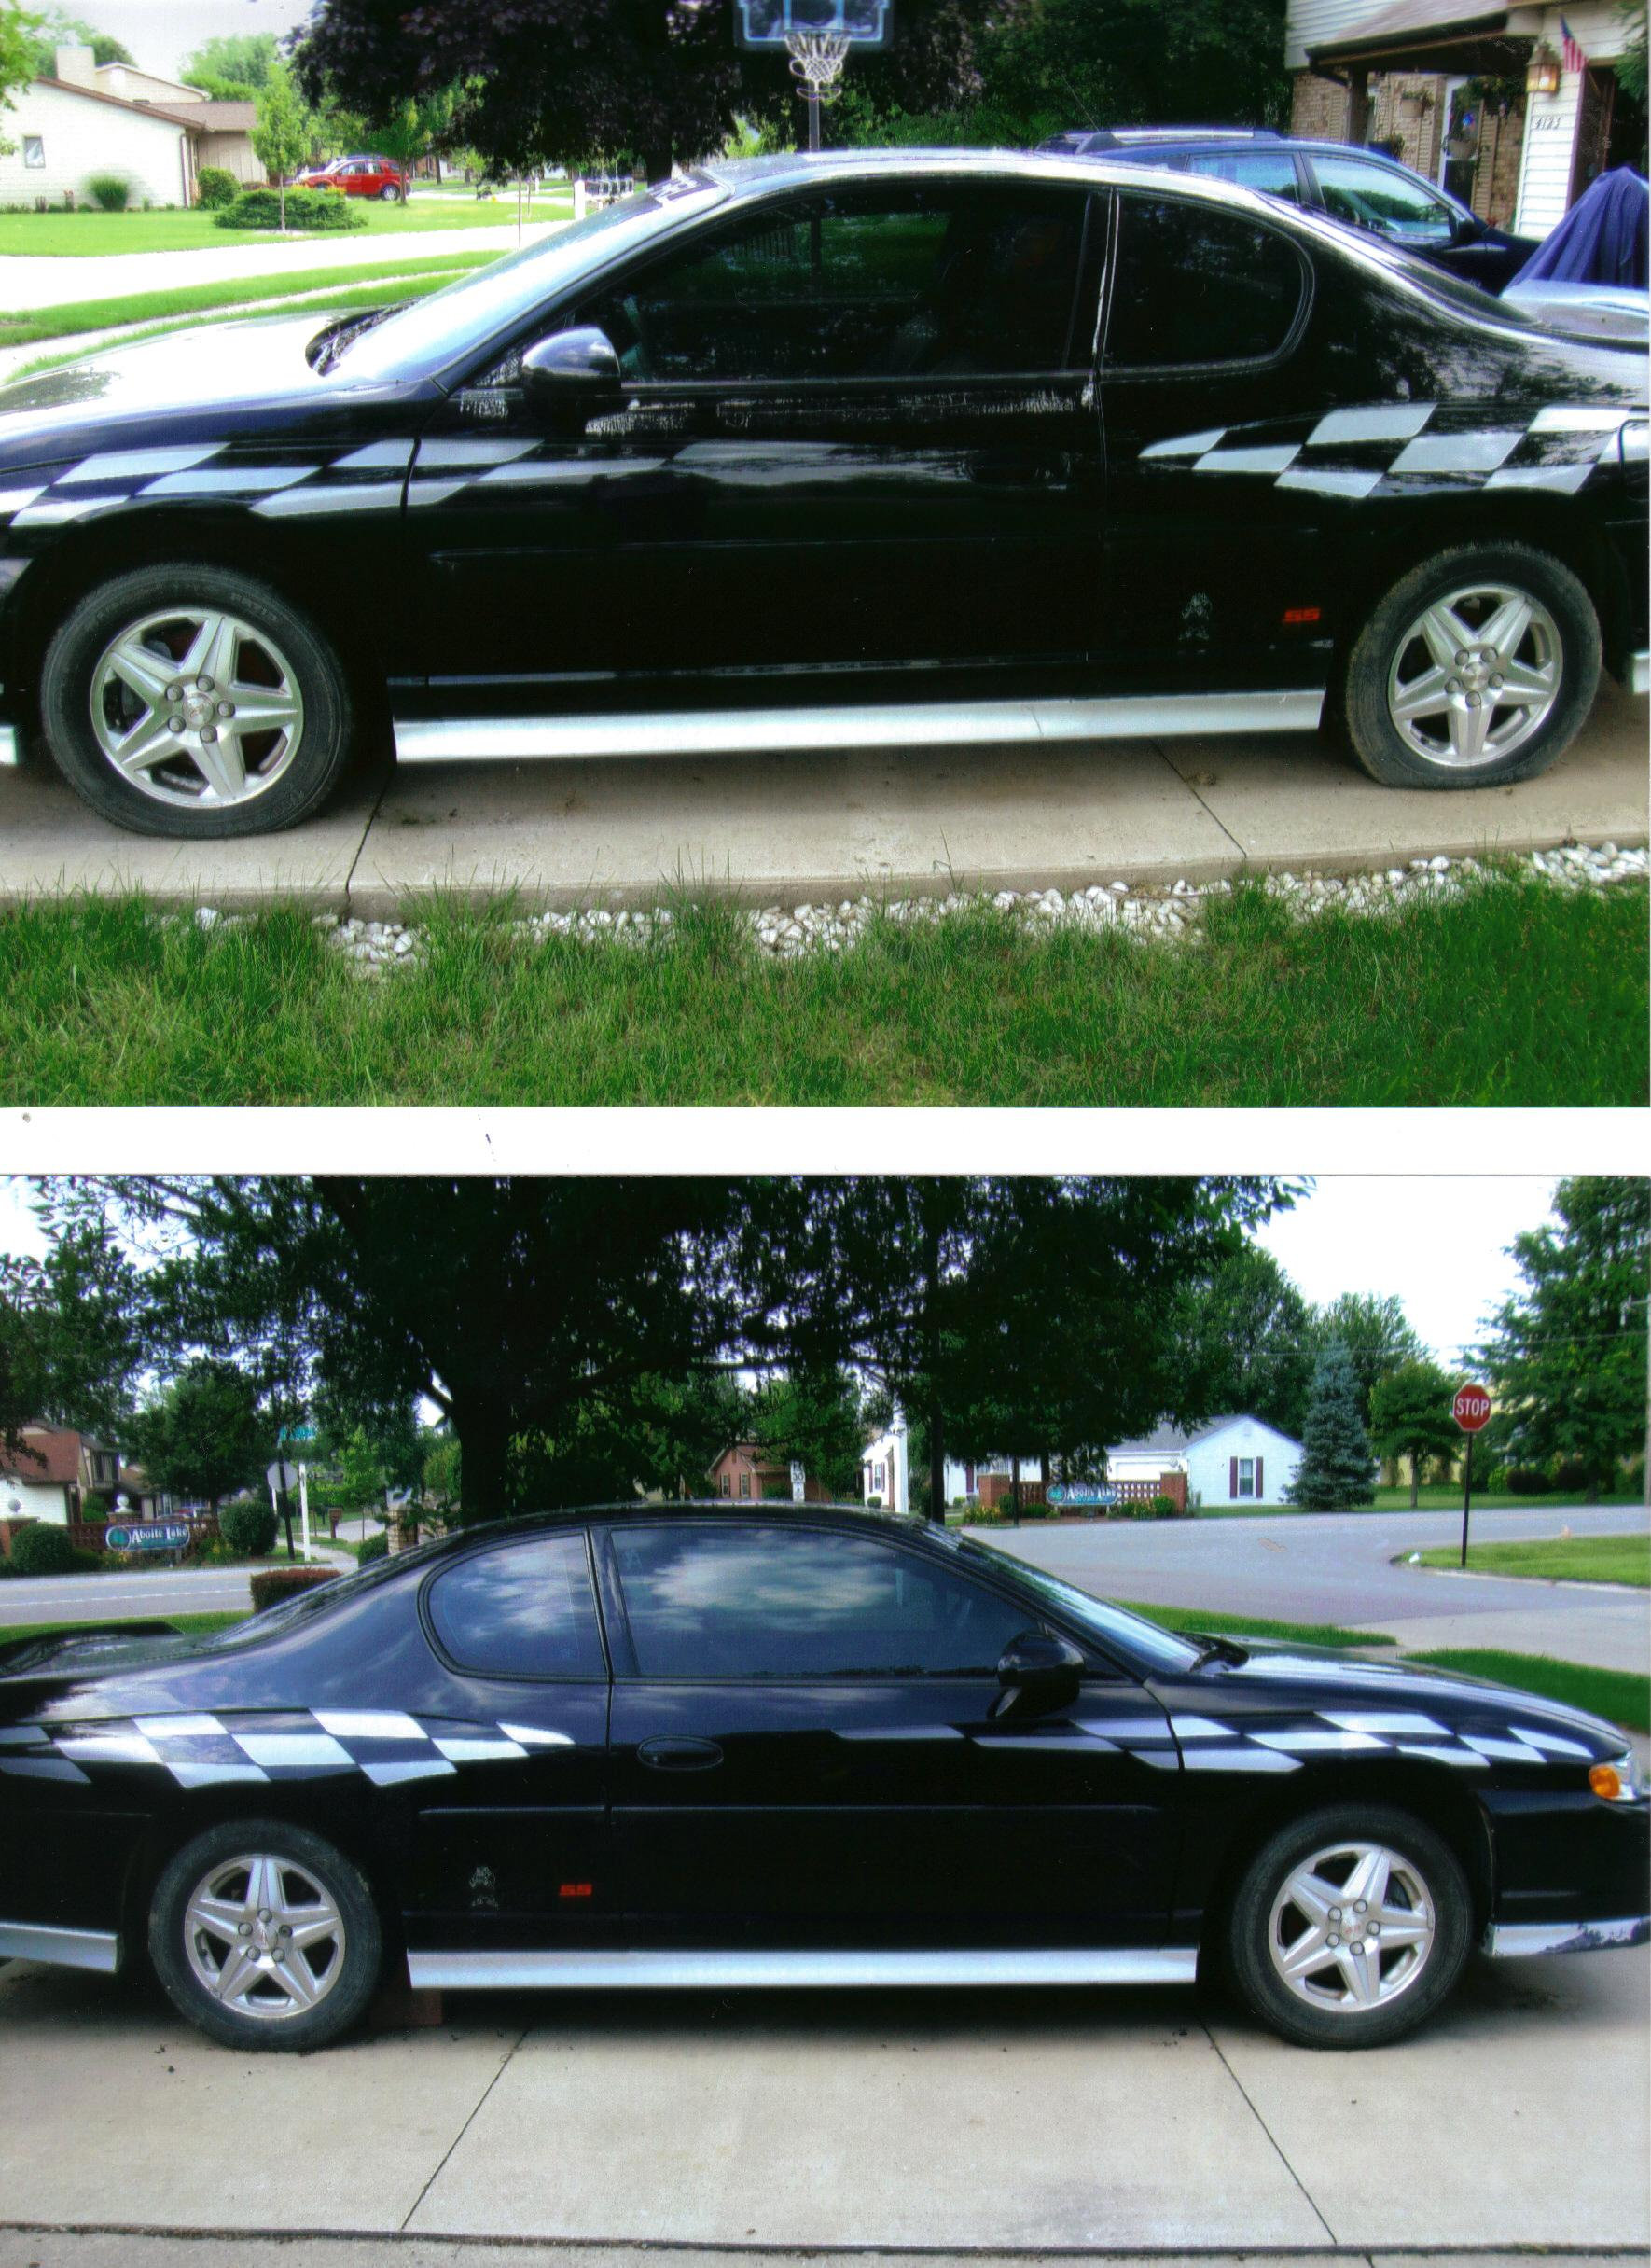 hturtthe 2001 chevrolet monte carloss coupe 2d specs. Black Bedroom Furniture Sets. Home Design Ideas